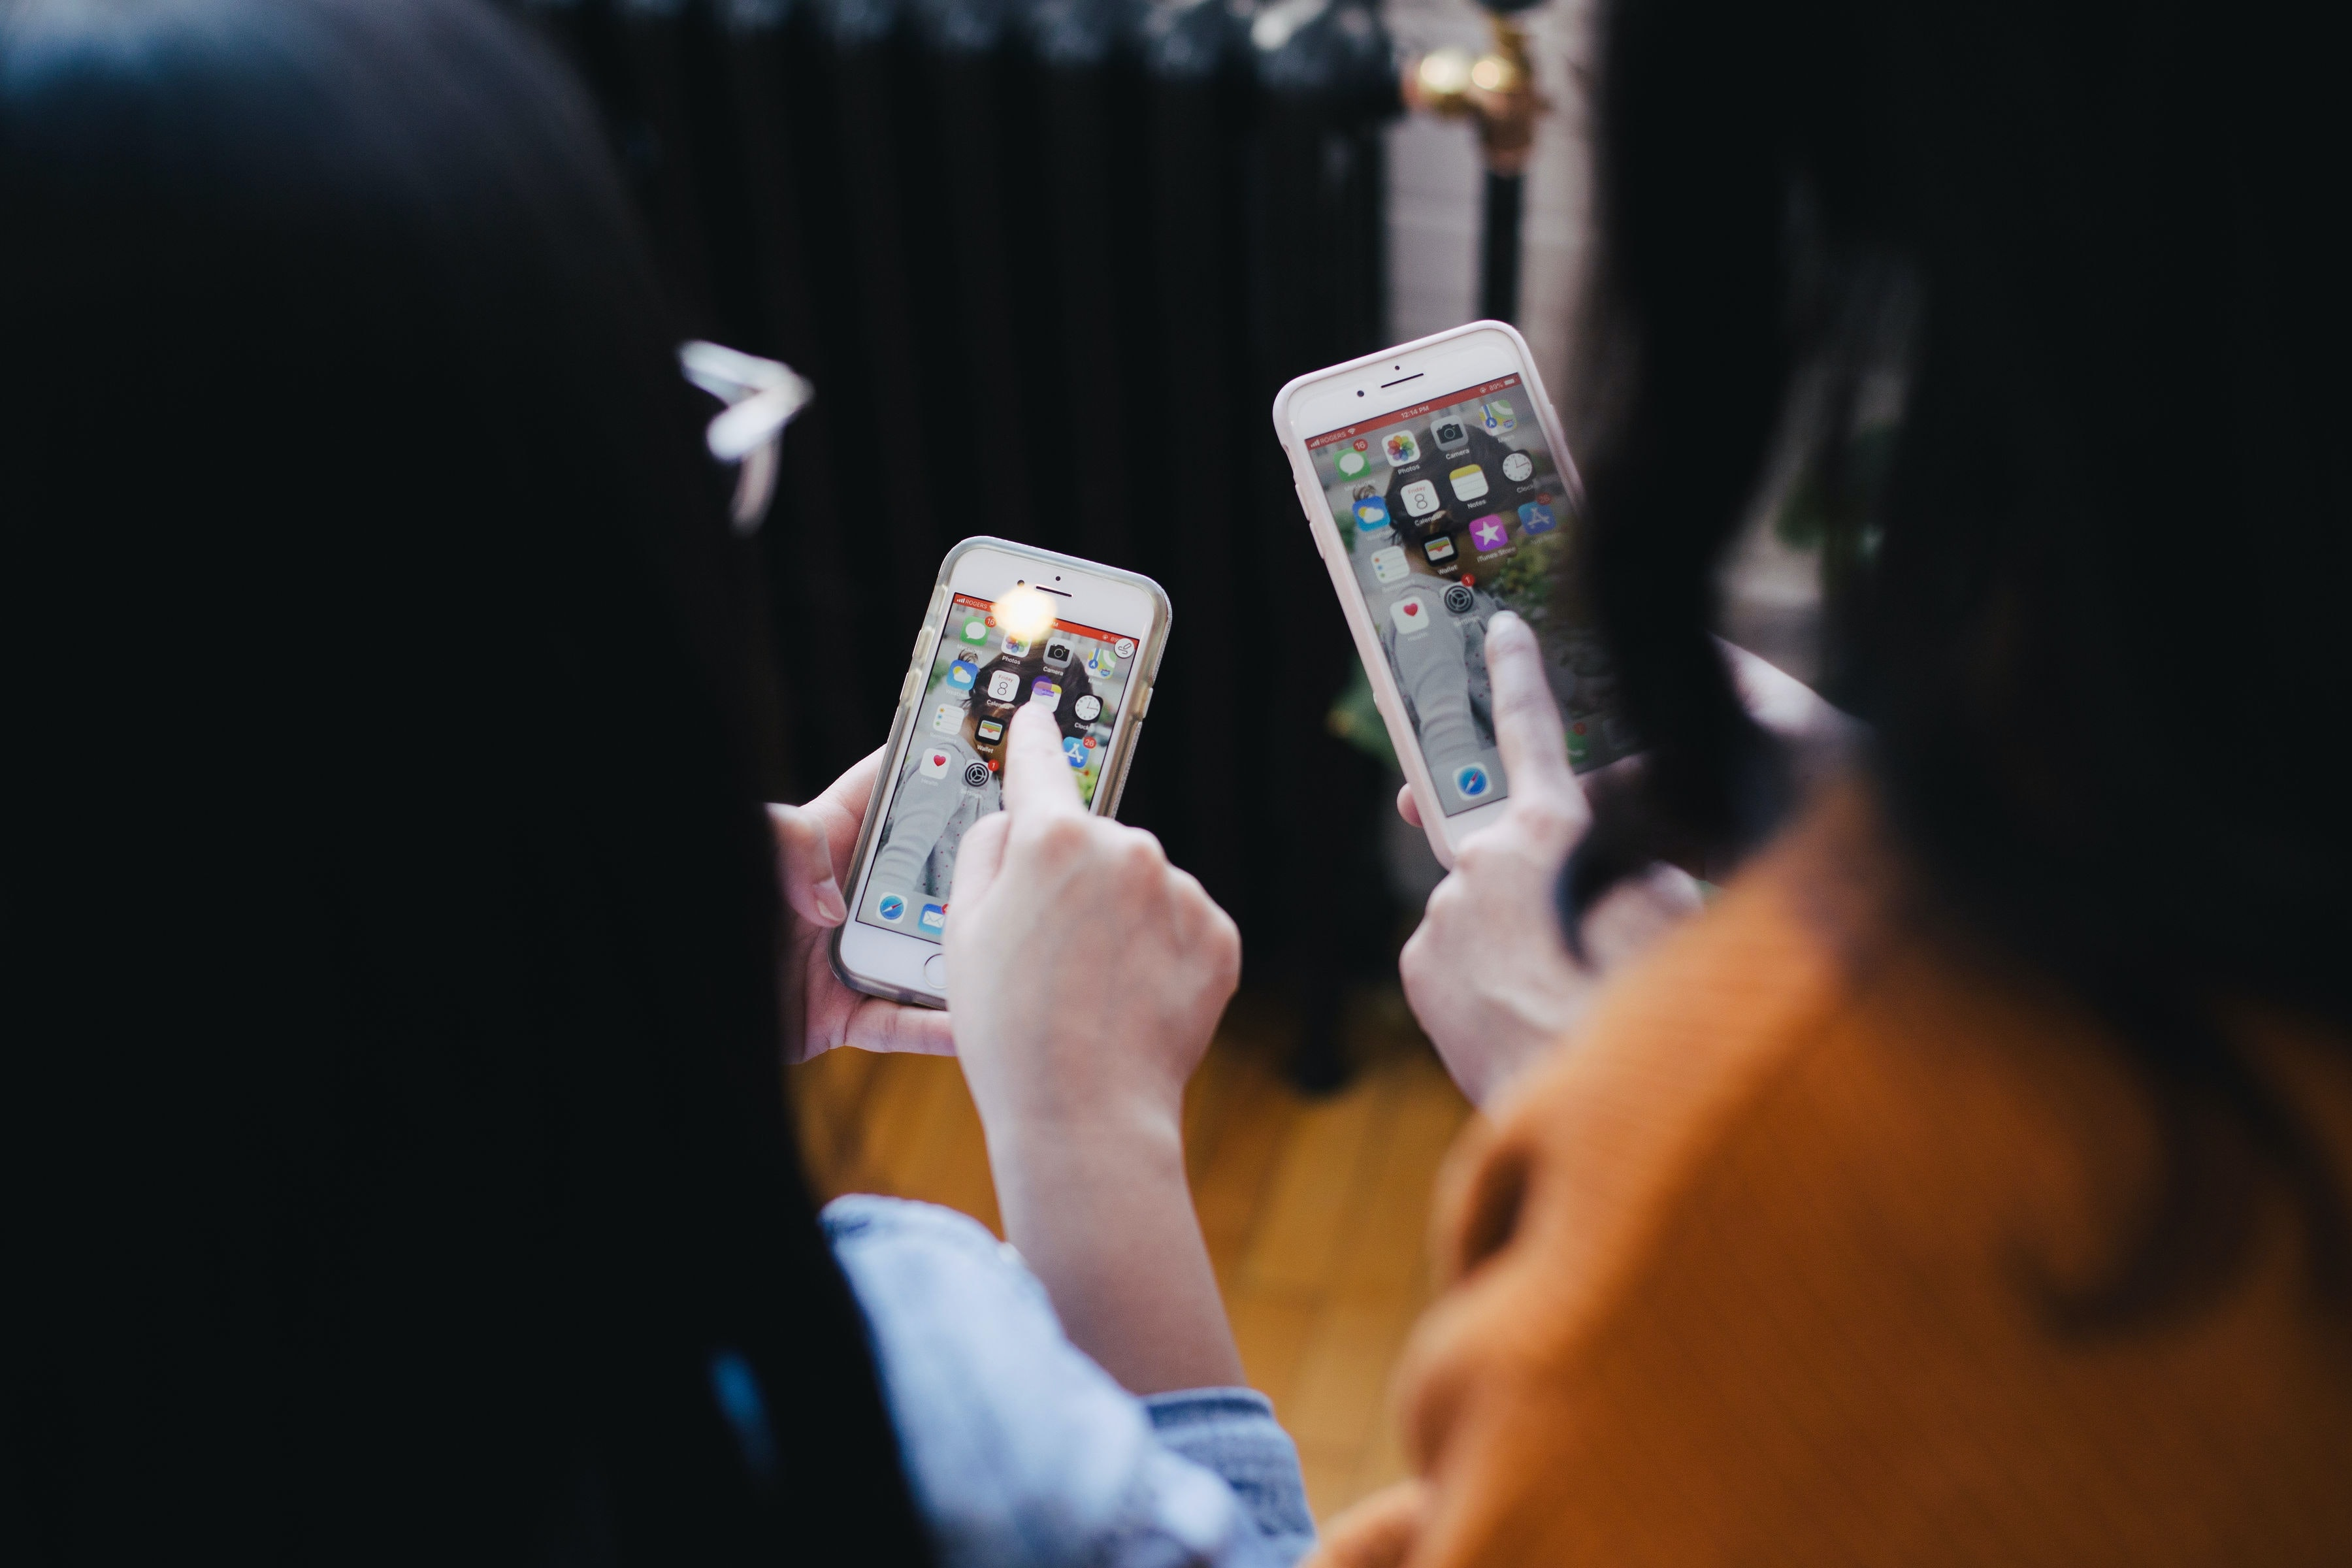 Two women looking at mobile phones